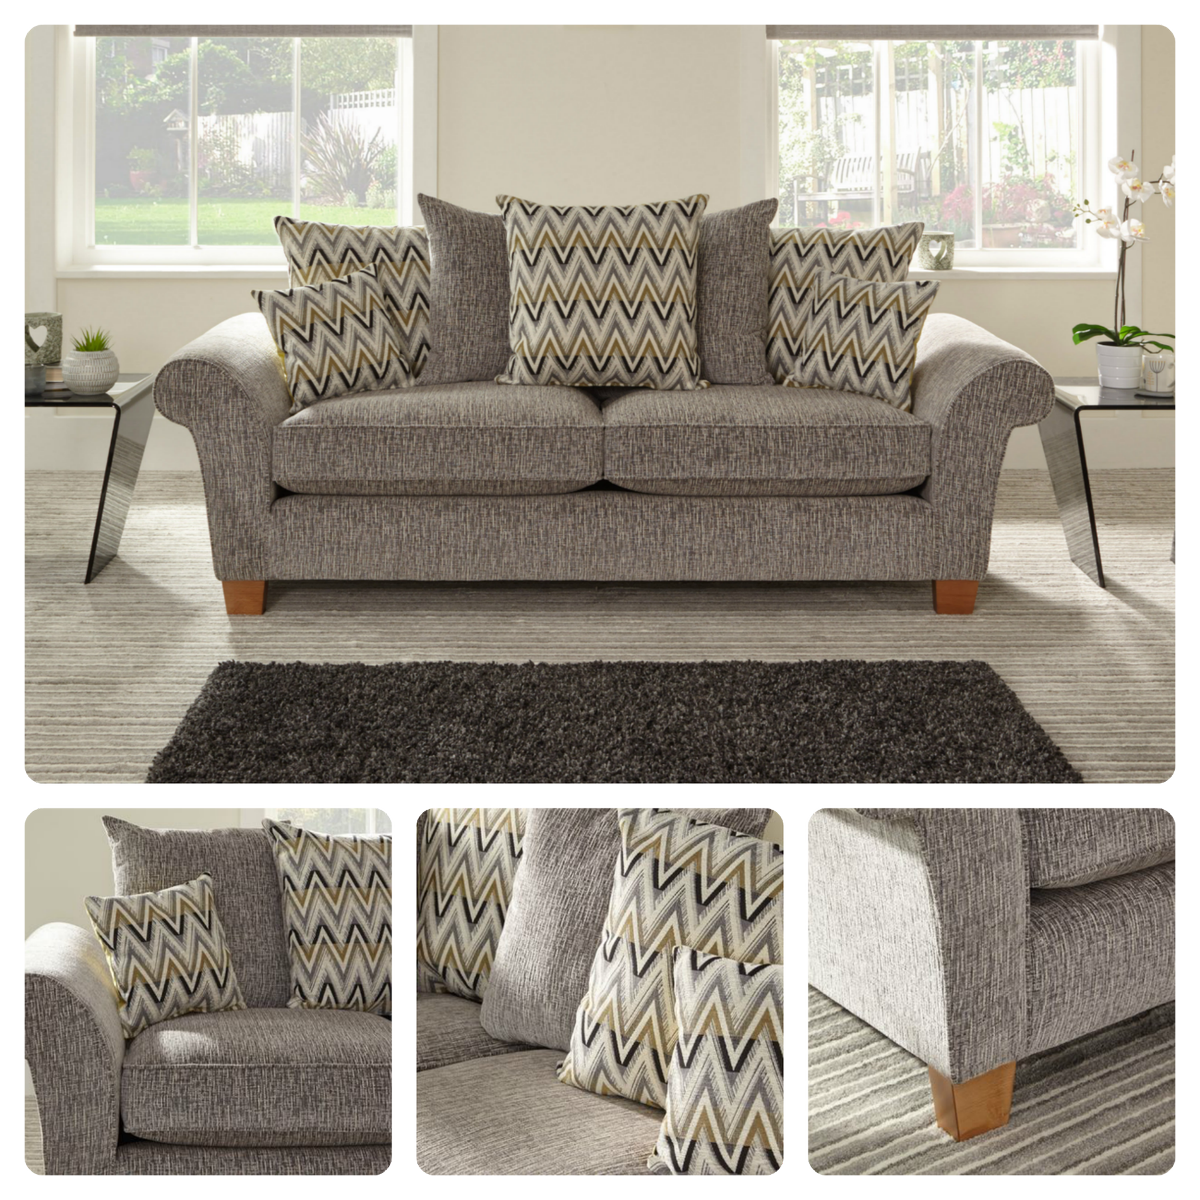 Scs Sofas On Twitter The Laguna Sofa Collection Combines Contemporary Designs And Vibrant Accent Fabrics Creating A Range That Would Look Stylish In Any